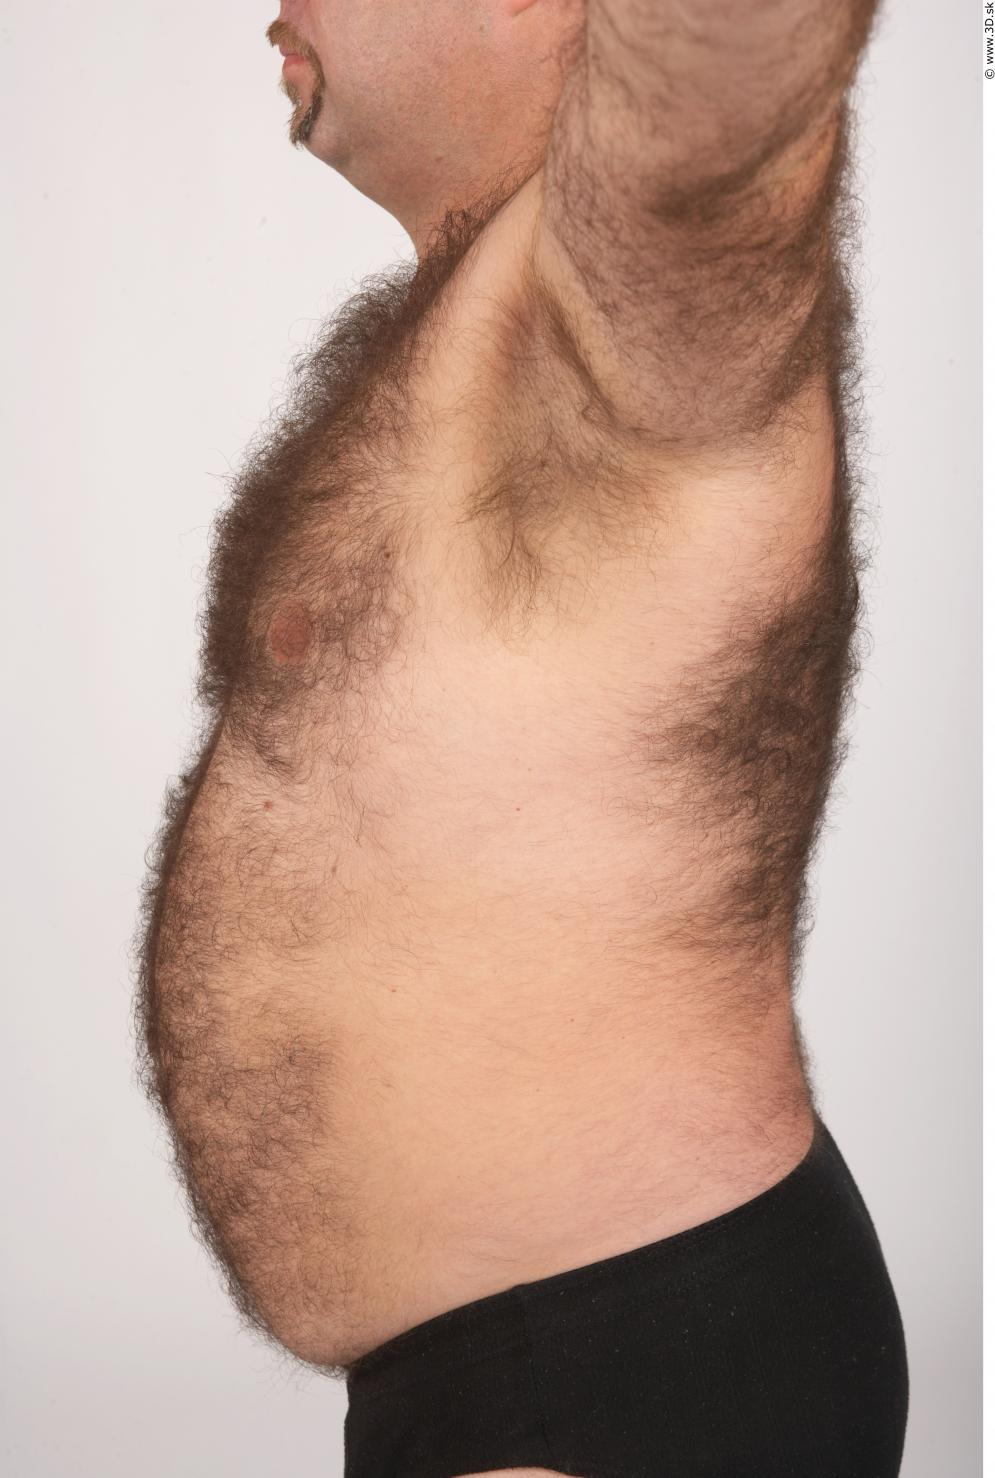 Image from Matej - Hairy male photo refences from 3D.sk - 288751matej_0110.jpg